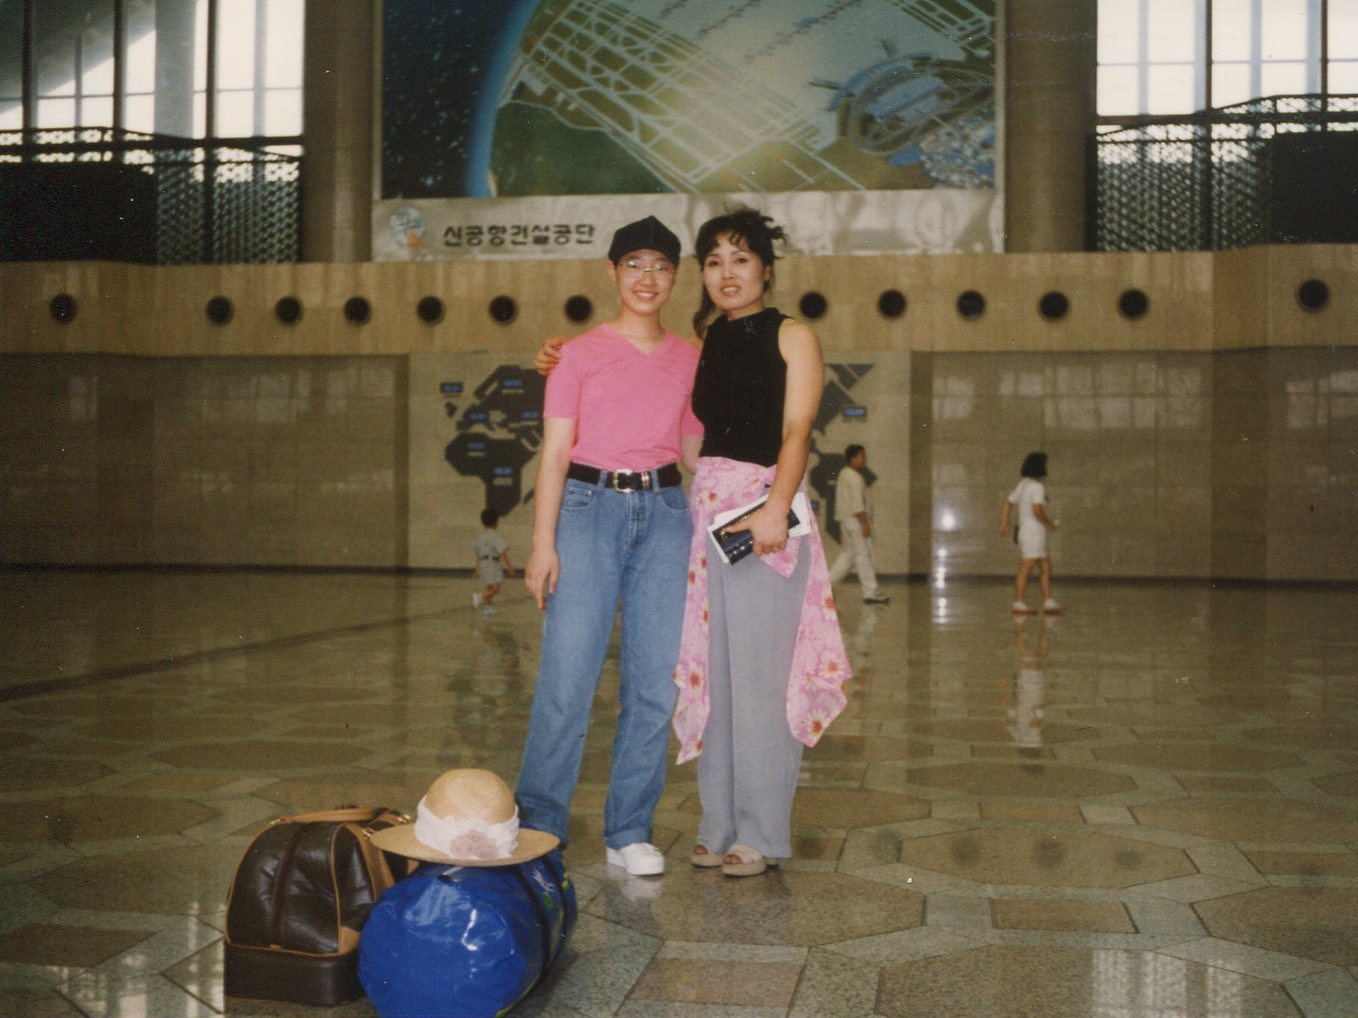 Robin Ha and her mother, Cassie, at an airport in South Korea, on their way to the U.S., in 1995.